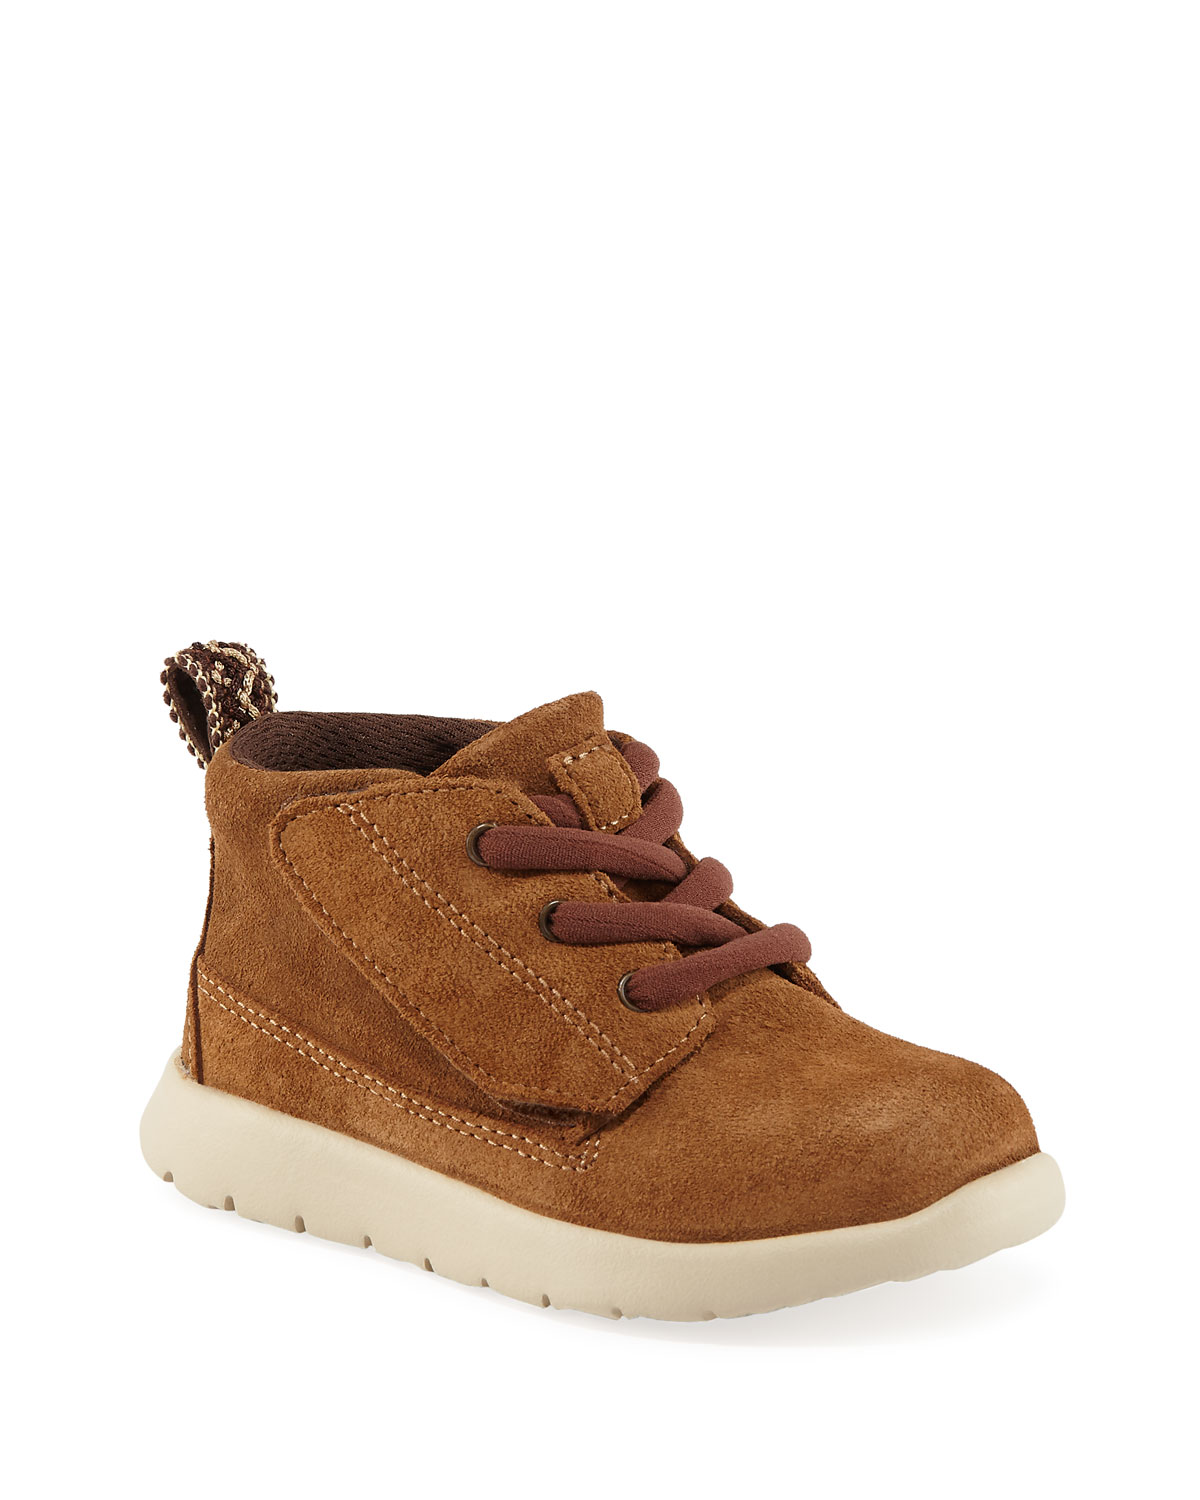 3862b29e5c0 Canoe Suede Boots, Baby/Toddler